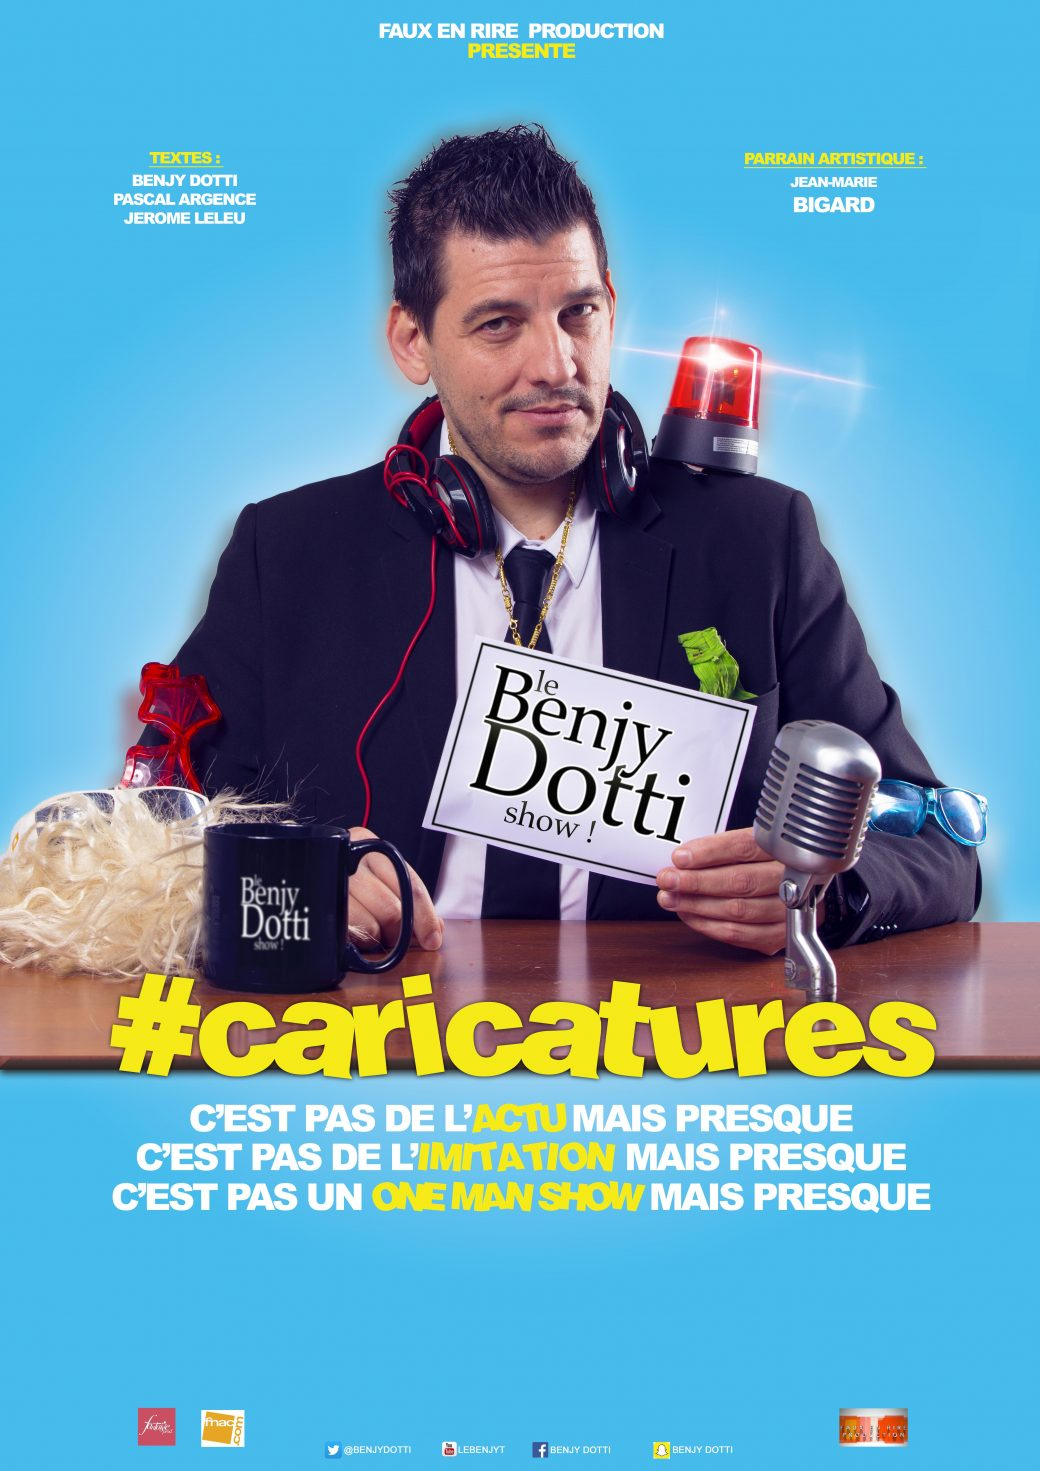 Benjy Dotti, caricatures, one man show, spectacle, late show, Rire et Chansons, TPMP, Le Grand Journal, Les Grands Du Rire